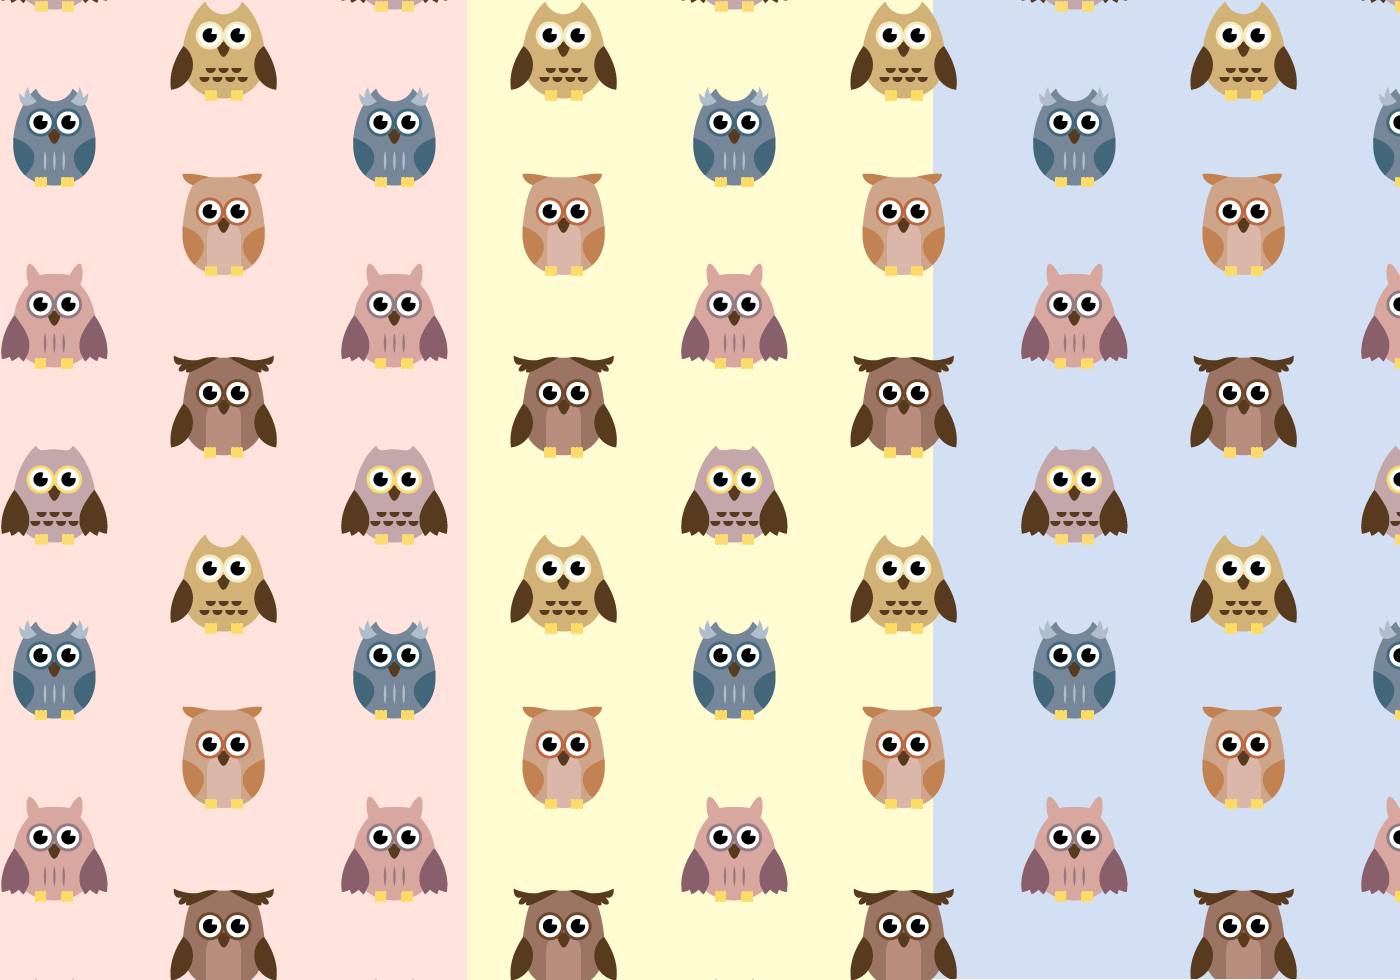 Cartoon Images Fall Wallpaper Free Owl Pattern Vector Download Free Vector Art Stock